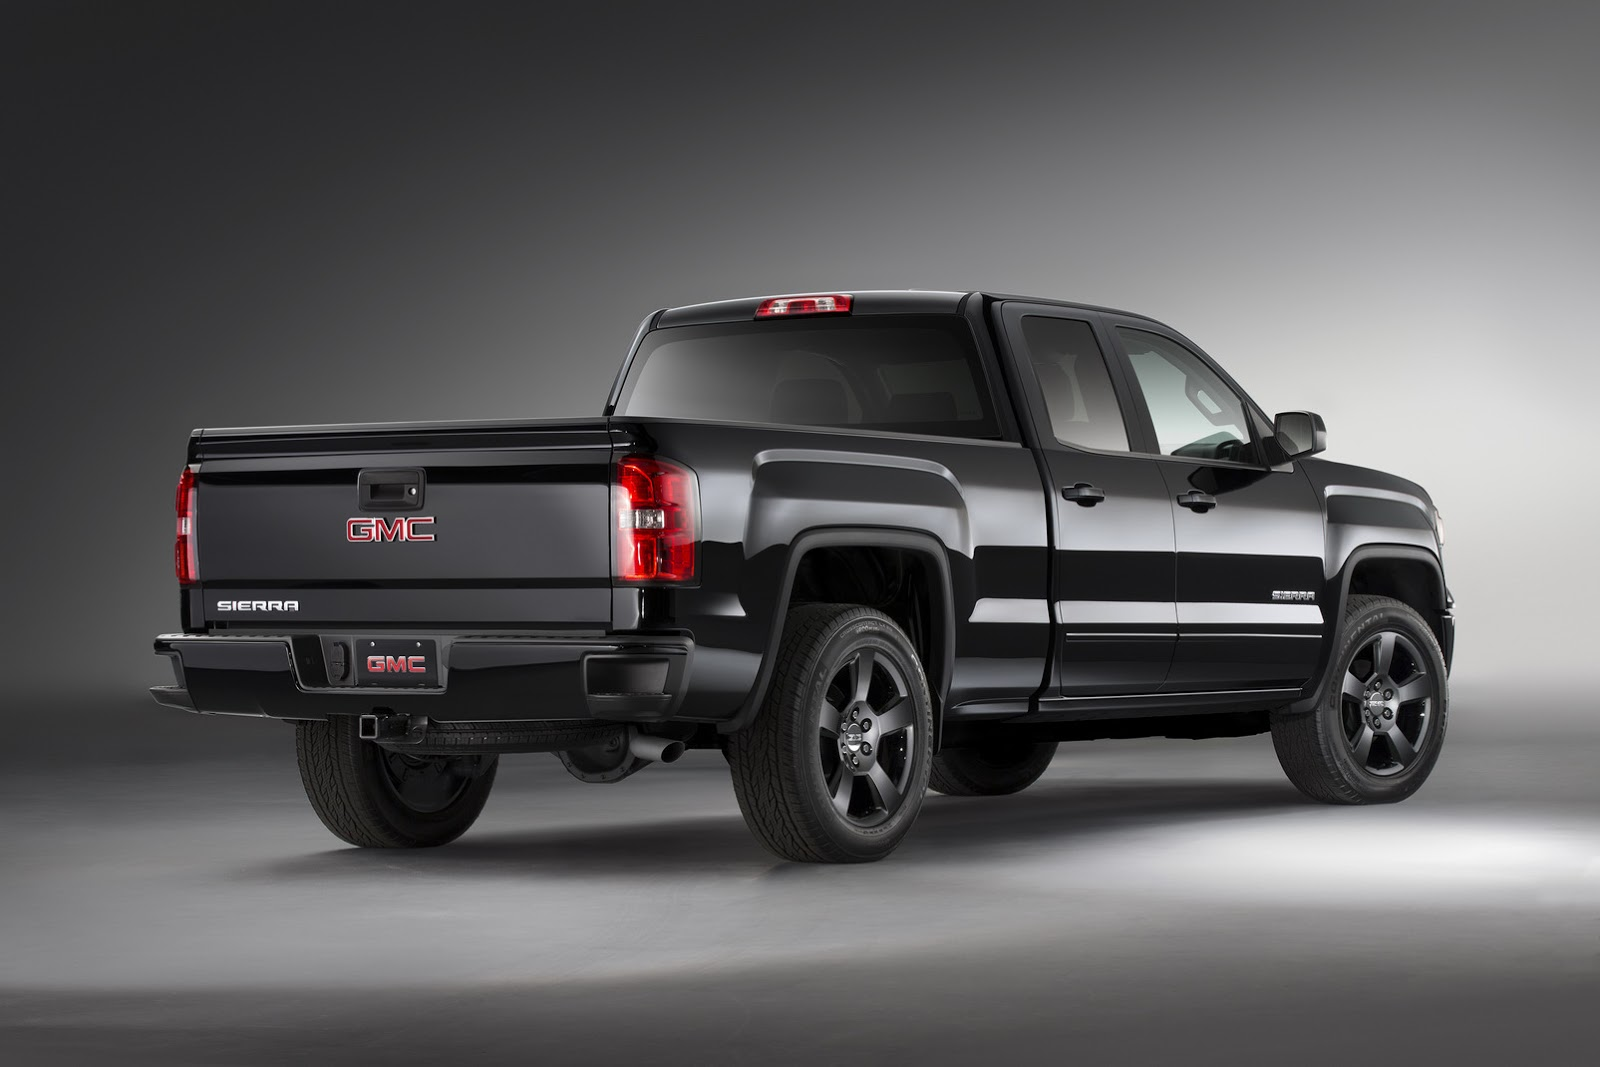 2015 Gmc Sierra Elevation Edition Starts At 865 2014 Silverado Engine Diagram 1